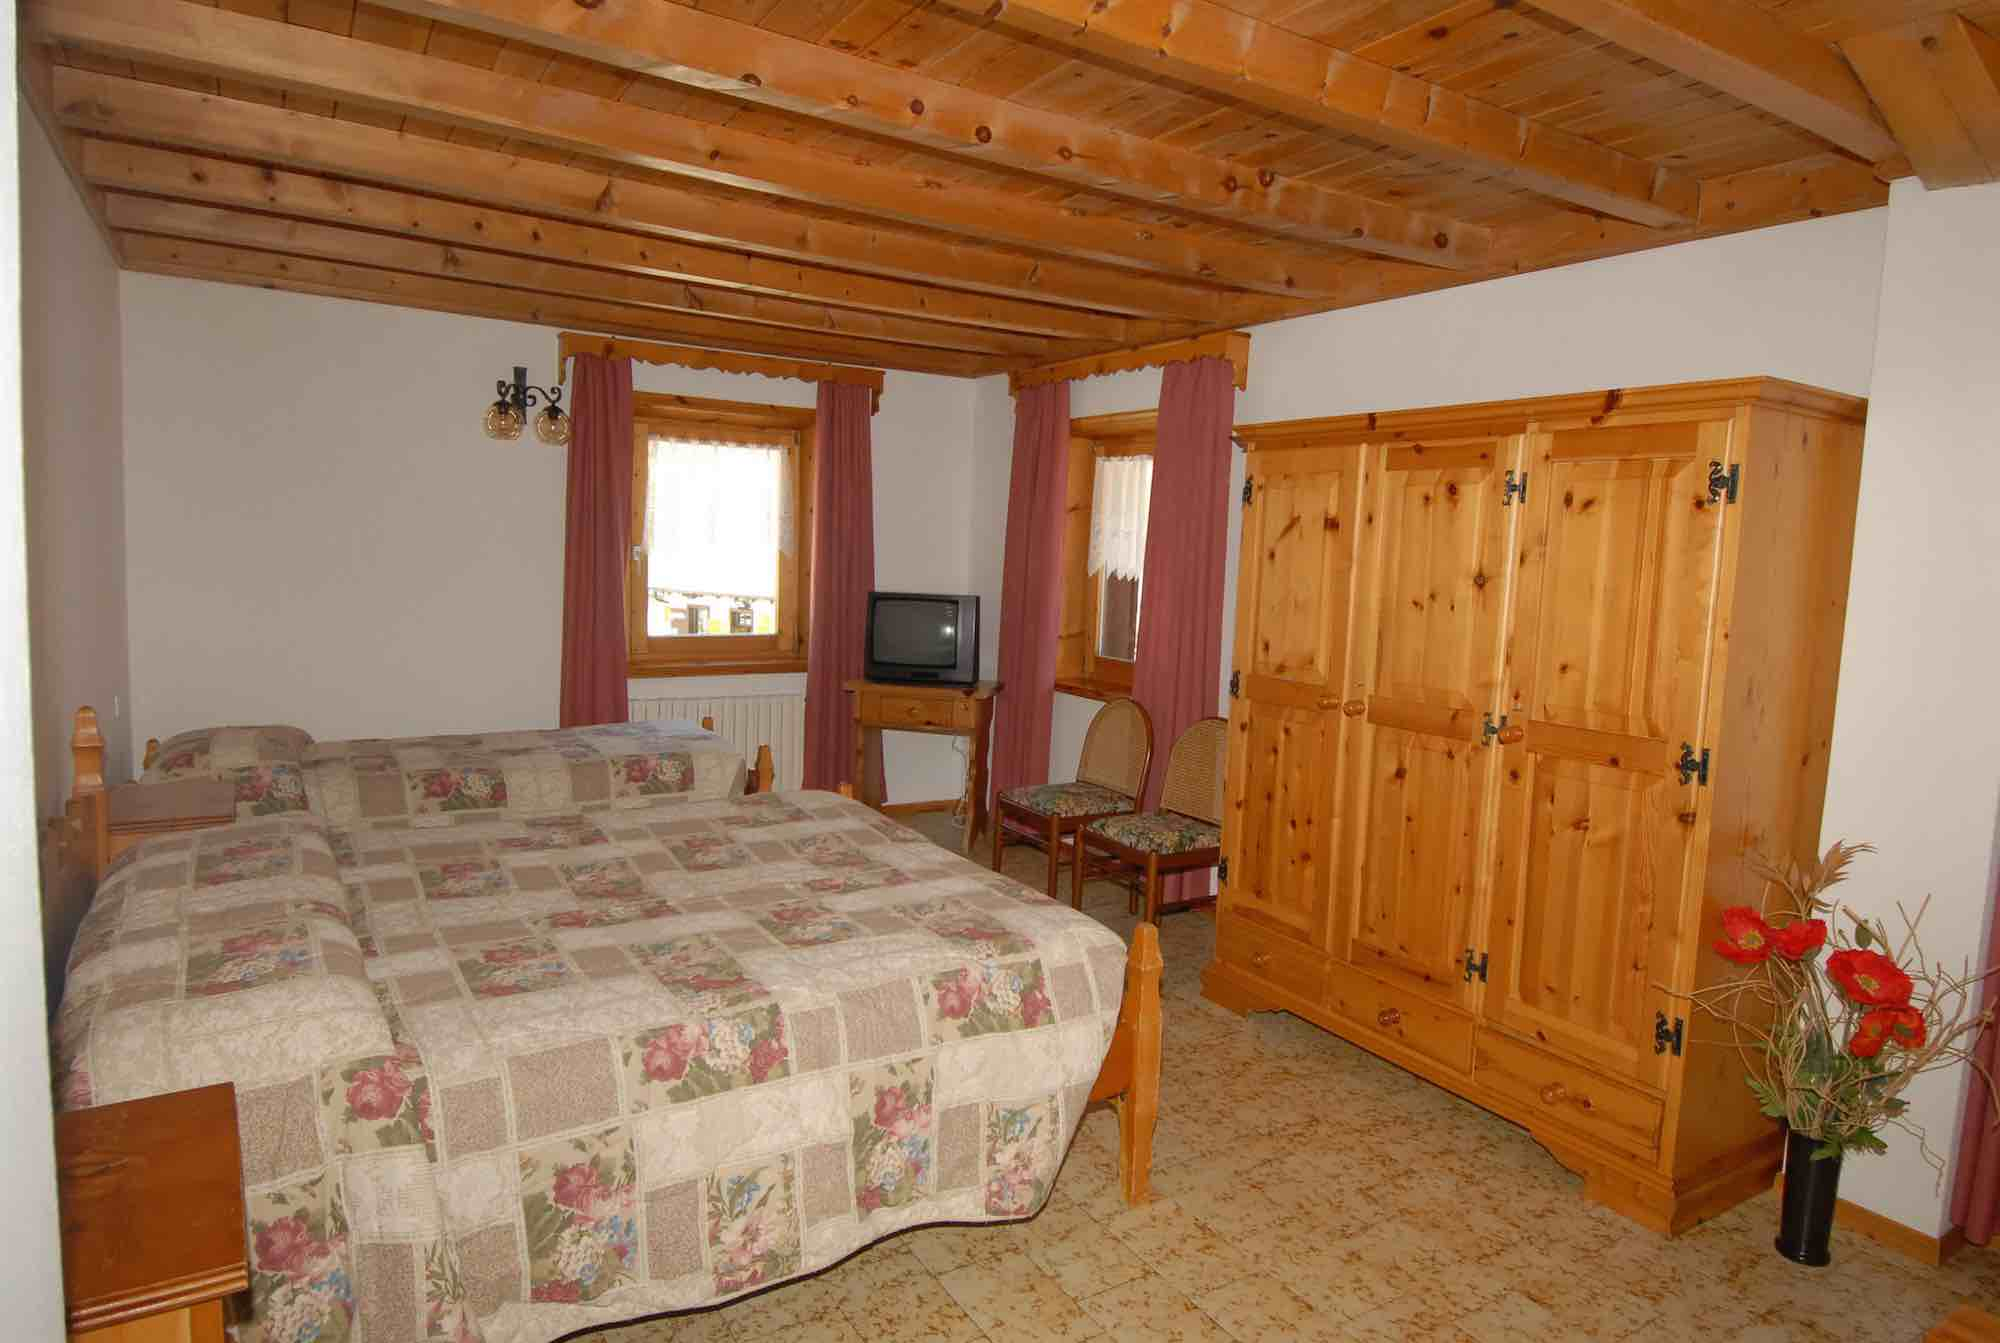 Baita Guana - Via Borch N.800, Livigno 23041 - Apartment - Primo Piano X6 2